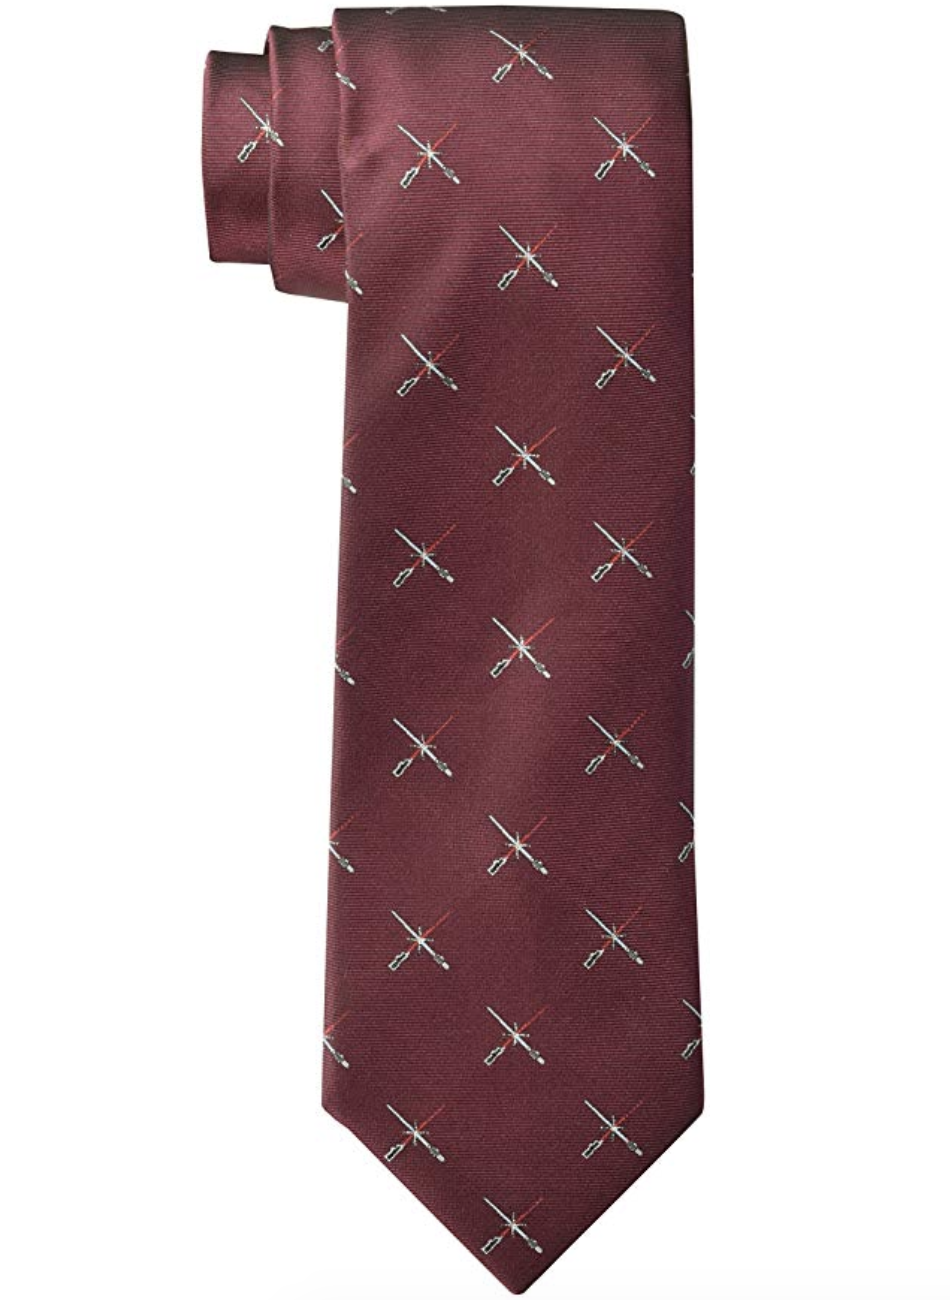 a burgundy tie with small light sabers on it